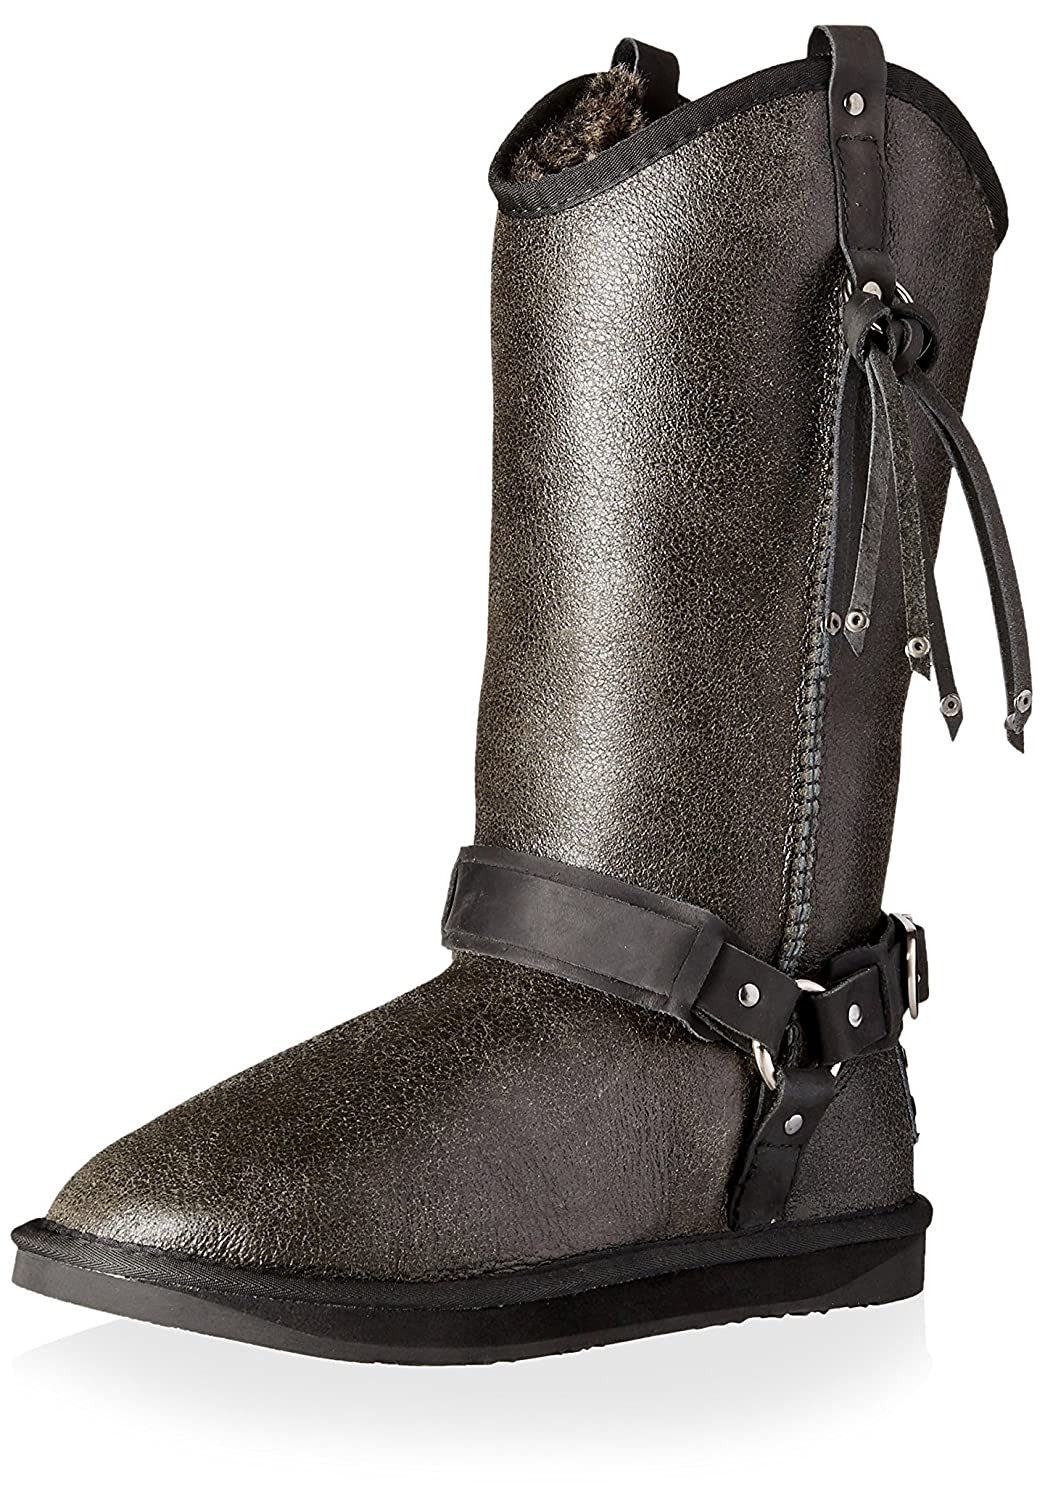 Australia Luxe Collective Women's Long Sheepskin Boot with Harness and Fringe B0114MSX4M 40 M EU/9 M US|Distressed Black